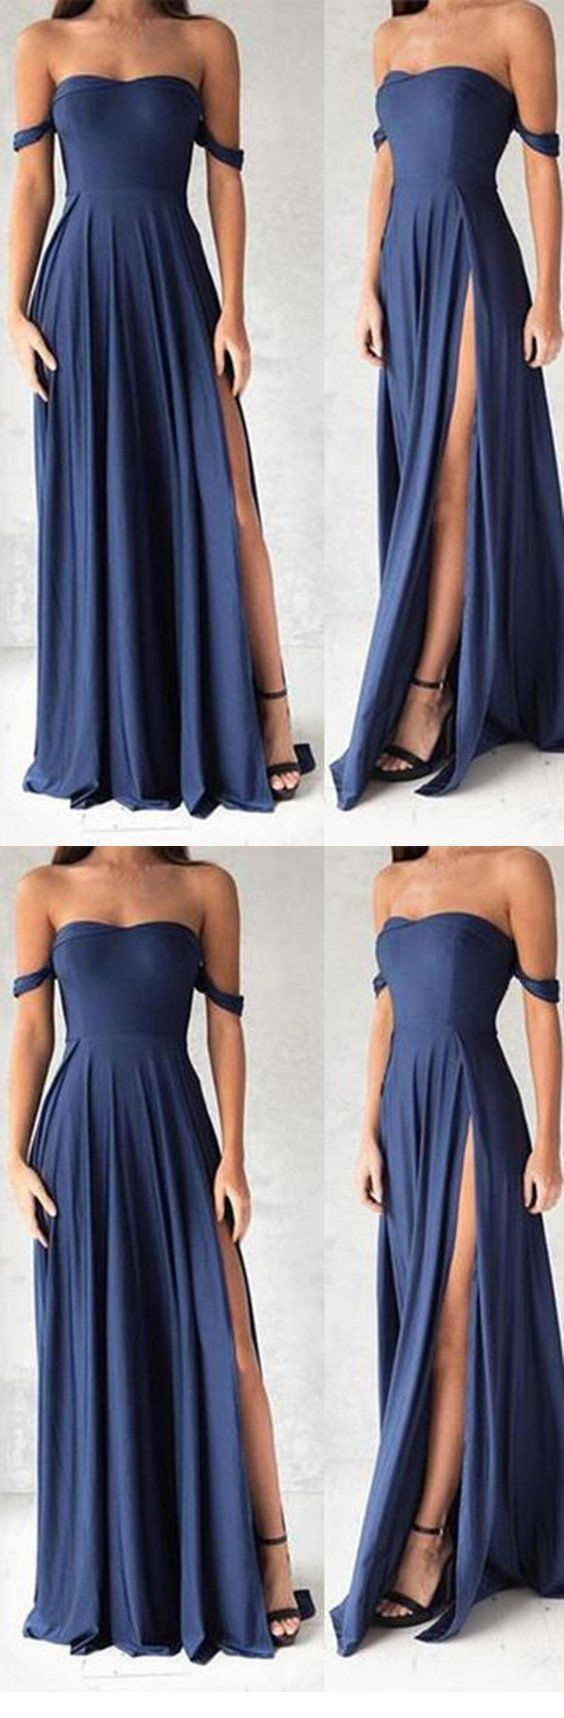 Elegant evening dresseslong formal gowns miladies fashion